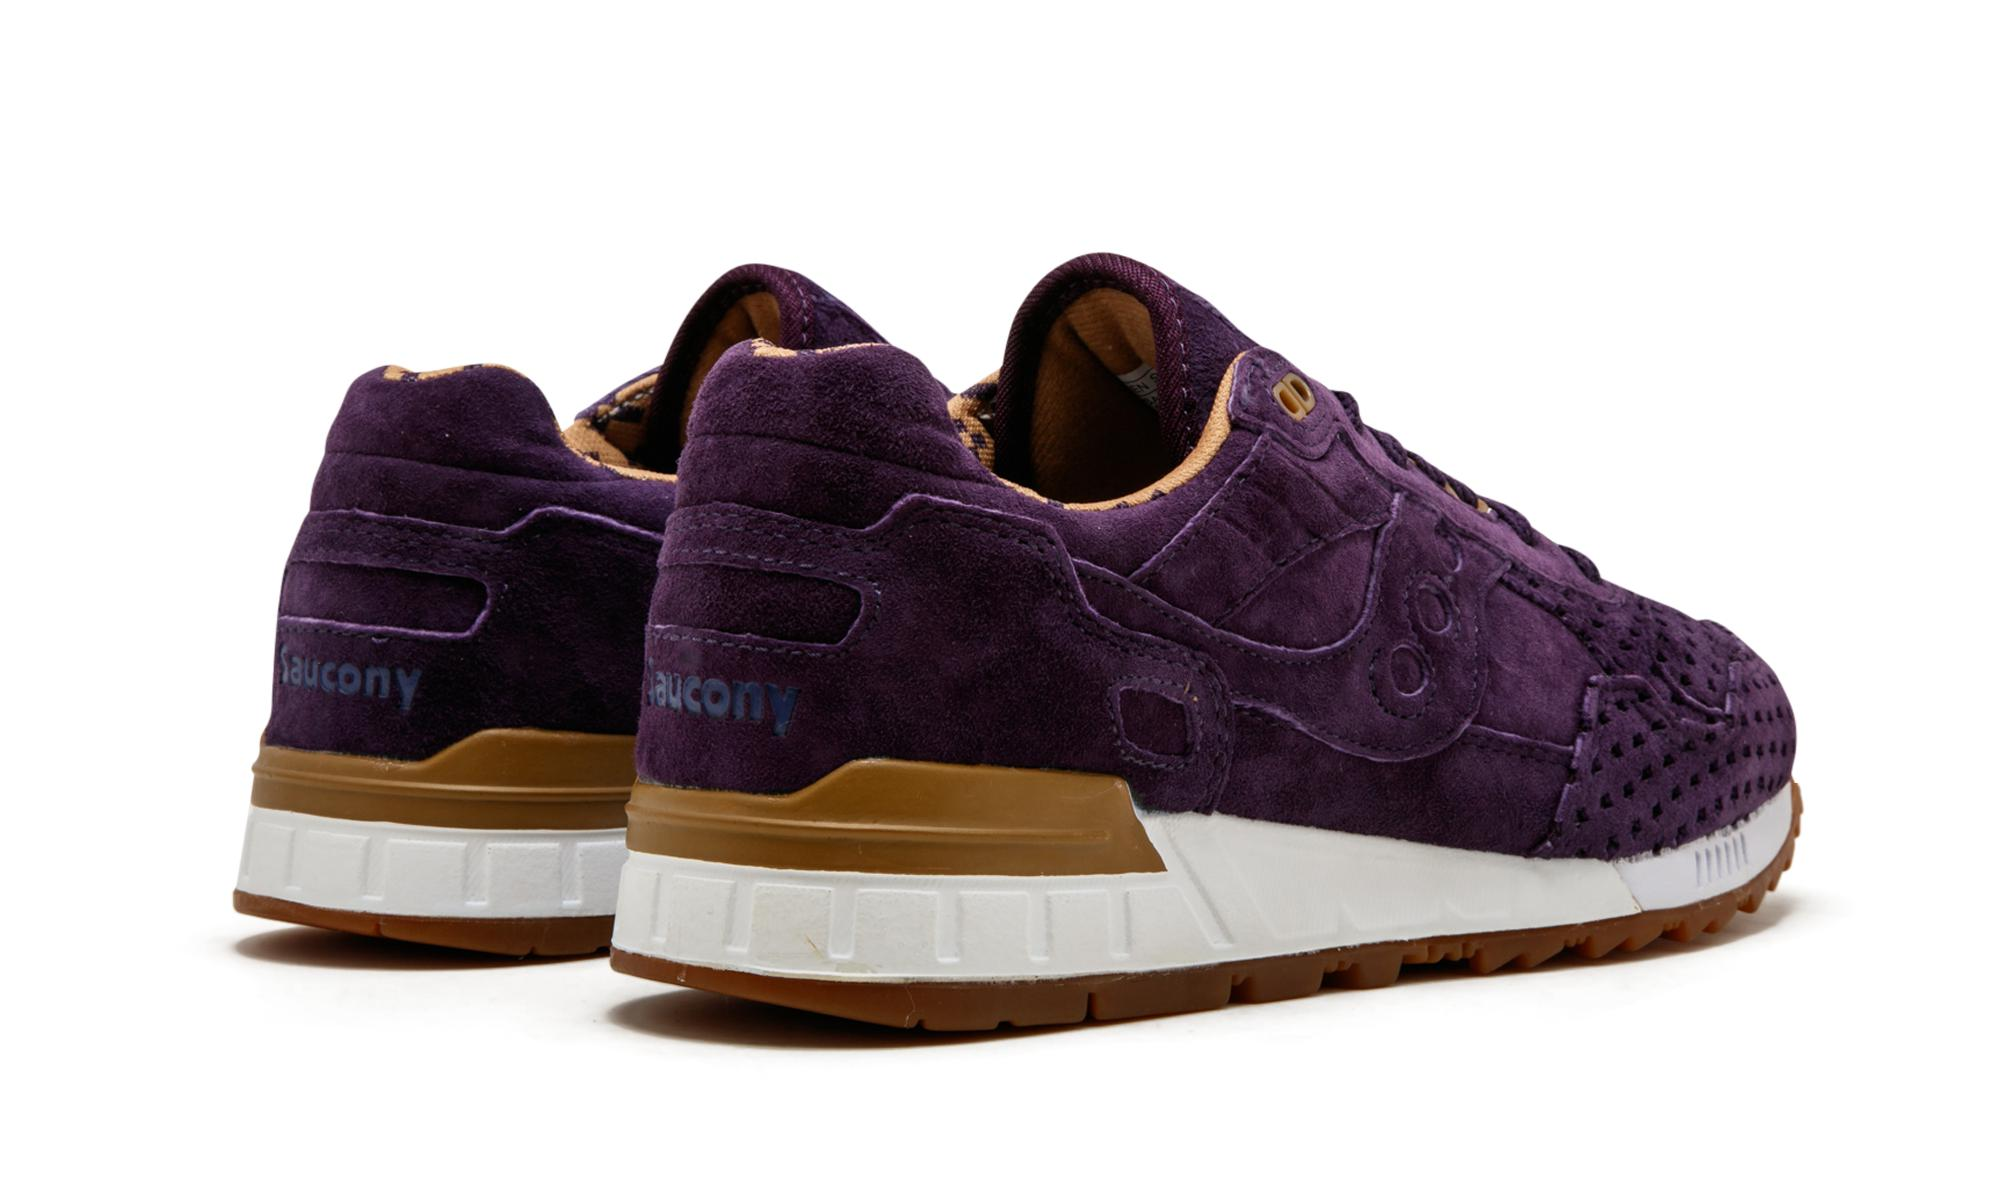 buy online 1ed8a 57309 Saucony Purple Shadow 5000